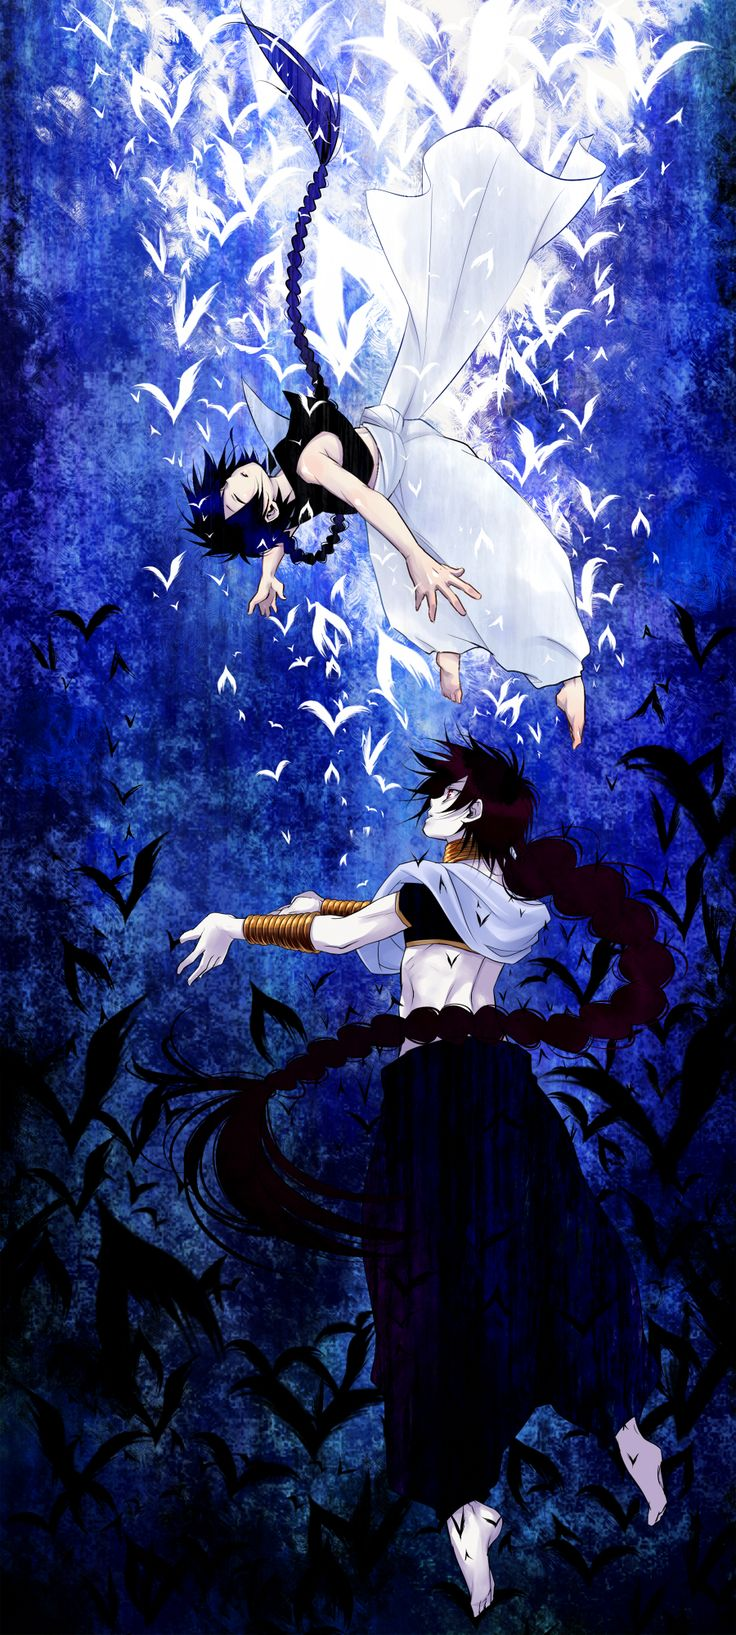 Aladdin & Judal | Magi: The Labyrinth of Magic | ♤ Anime ♤